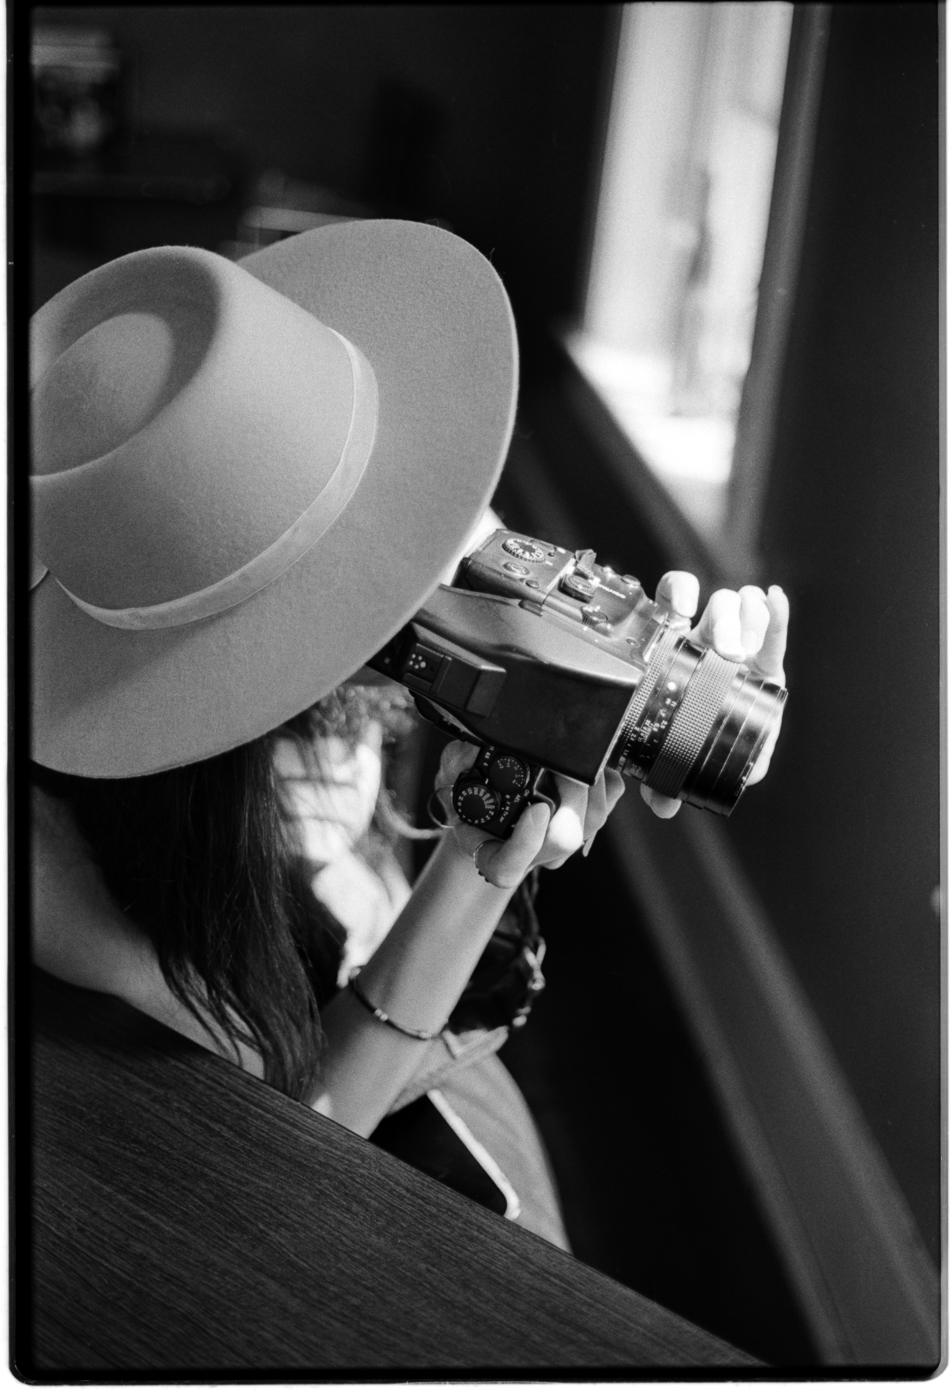 May photographing bottles on a window ledge with her medium format film camera.  Captured, developed and scanned by Parker on  Ilford HP5+  | 35mm